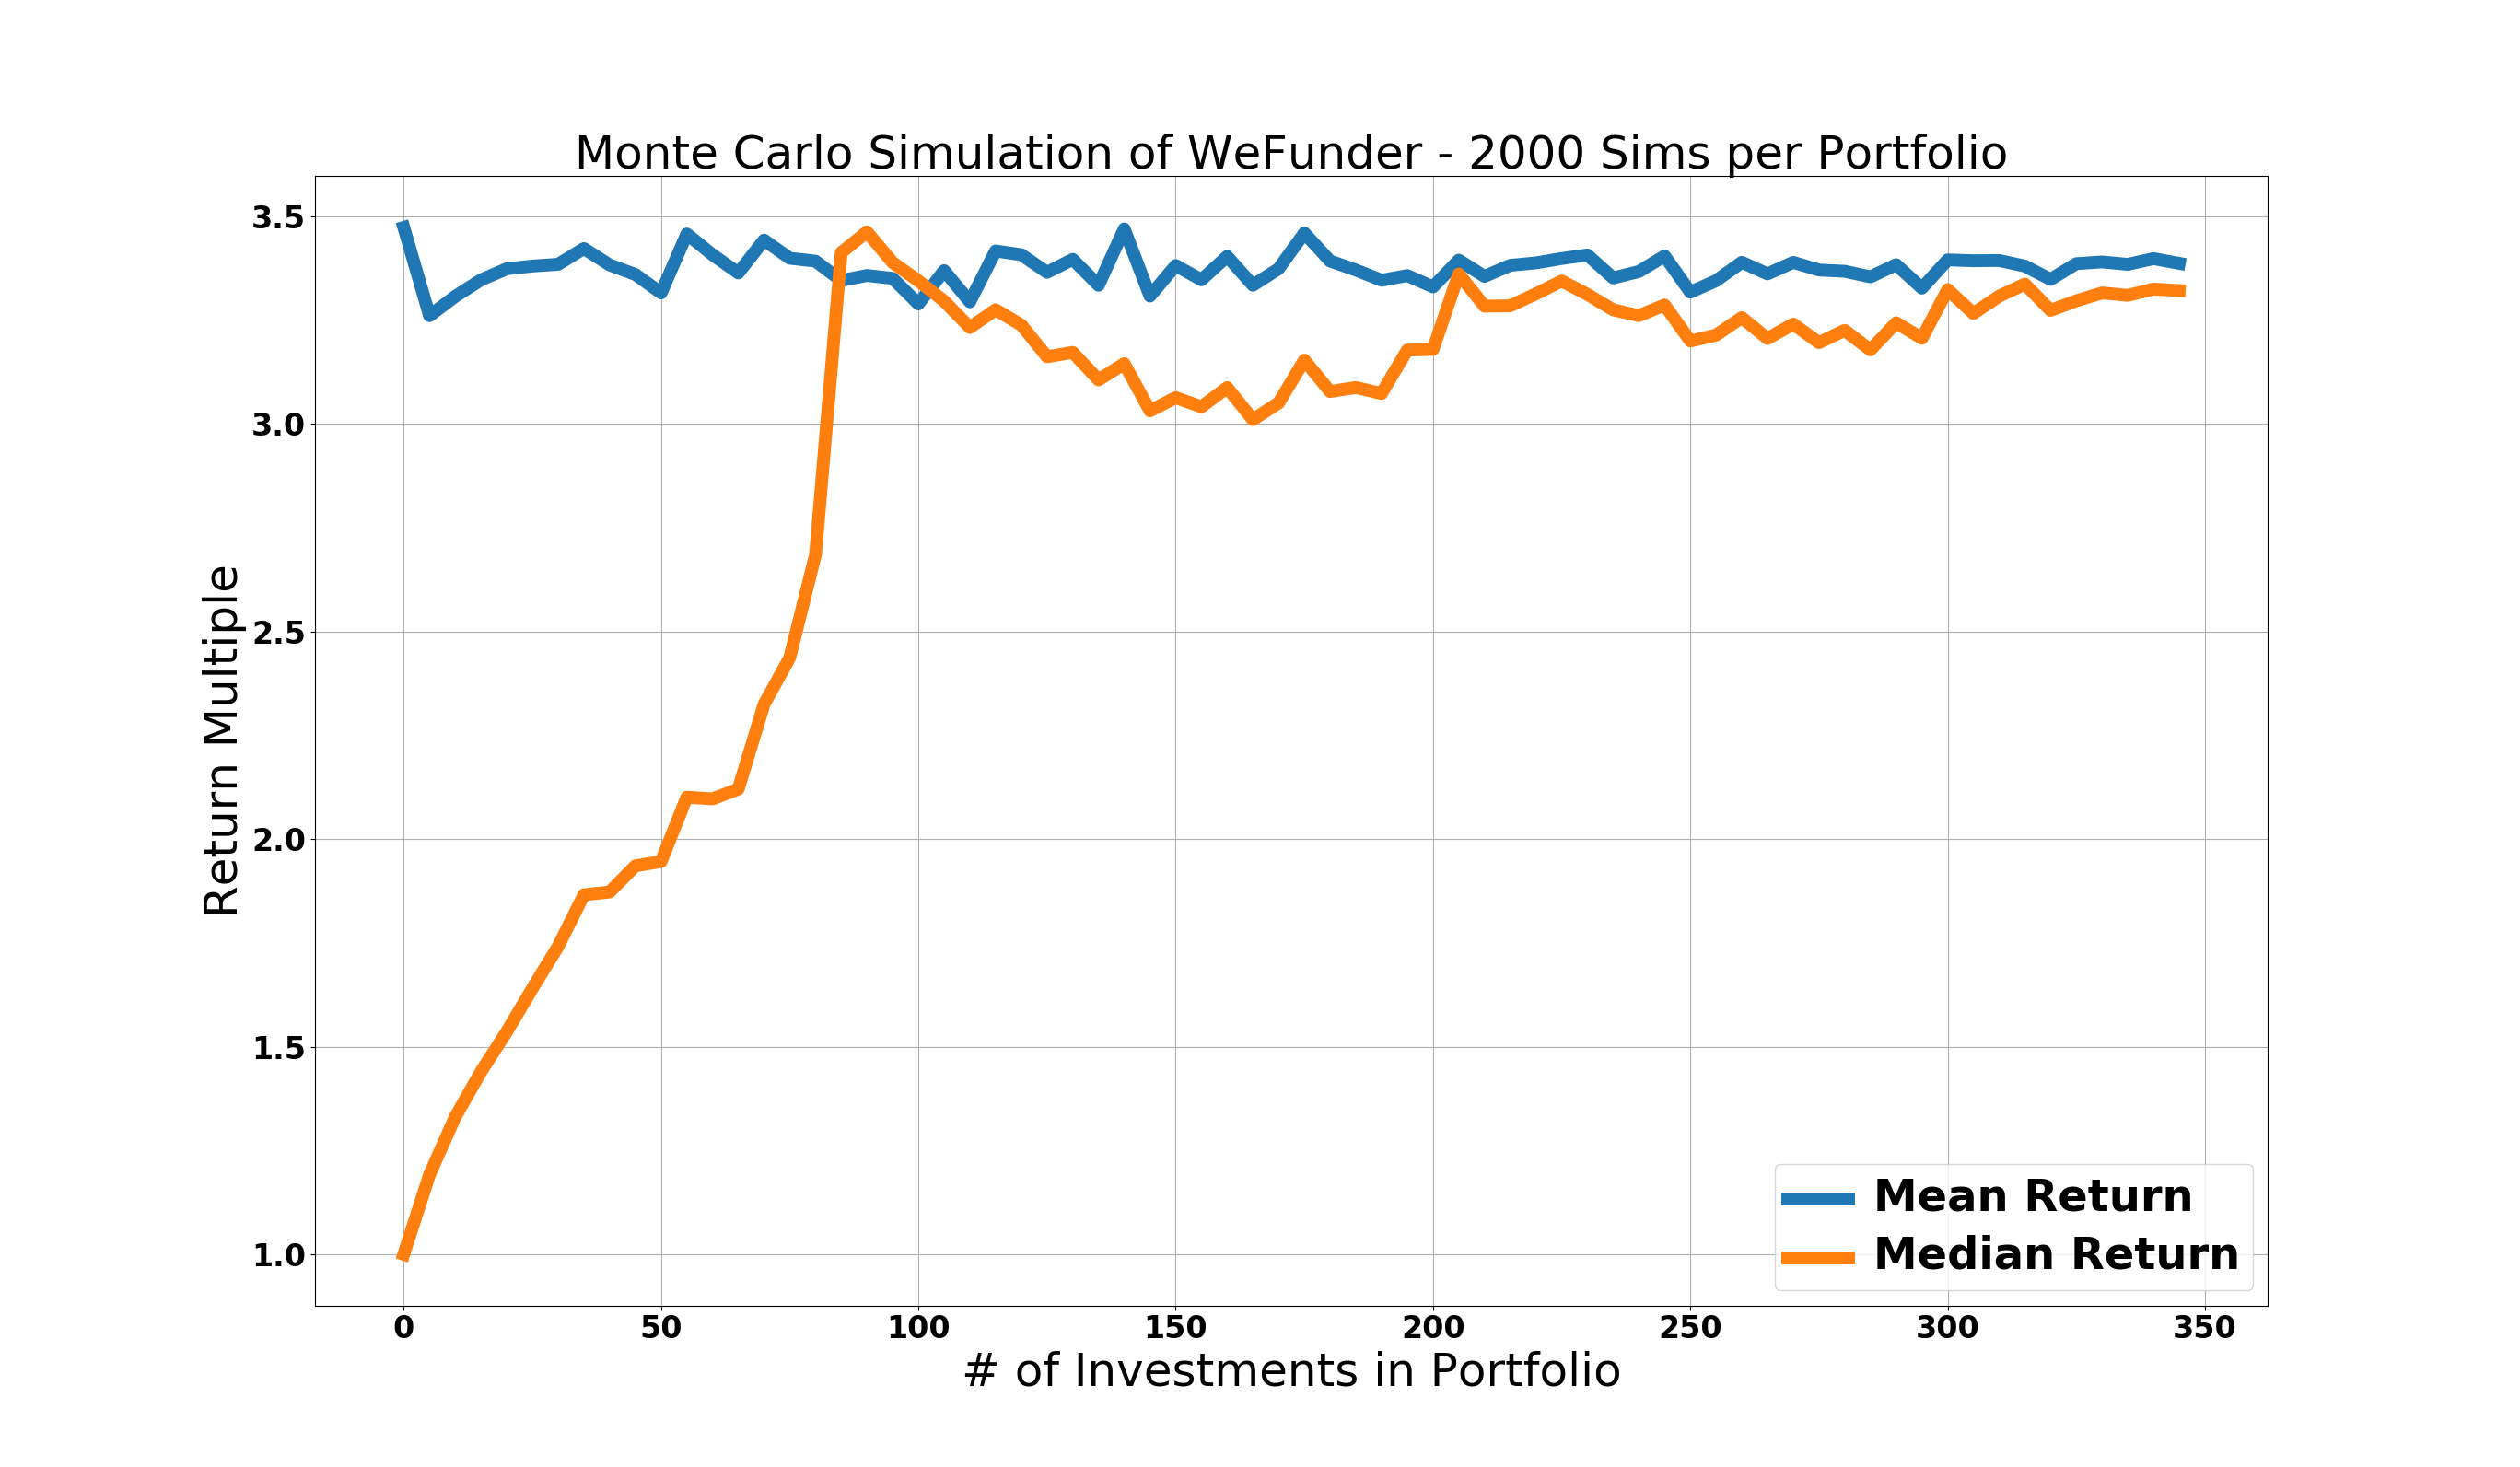 WeFunder Monte Carlo Mean and Median Returns